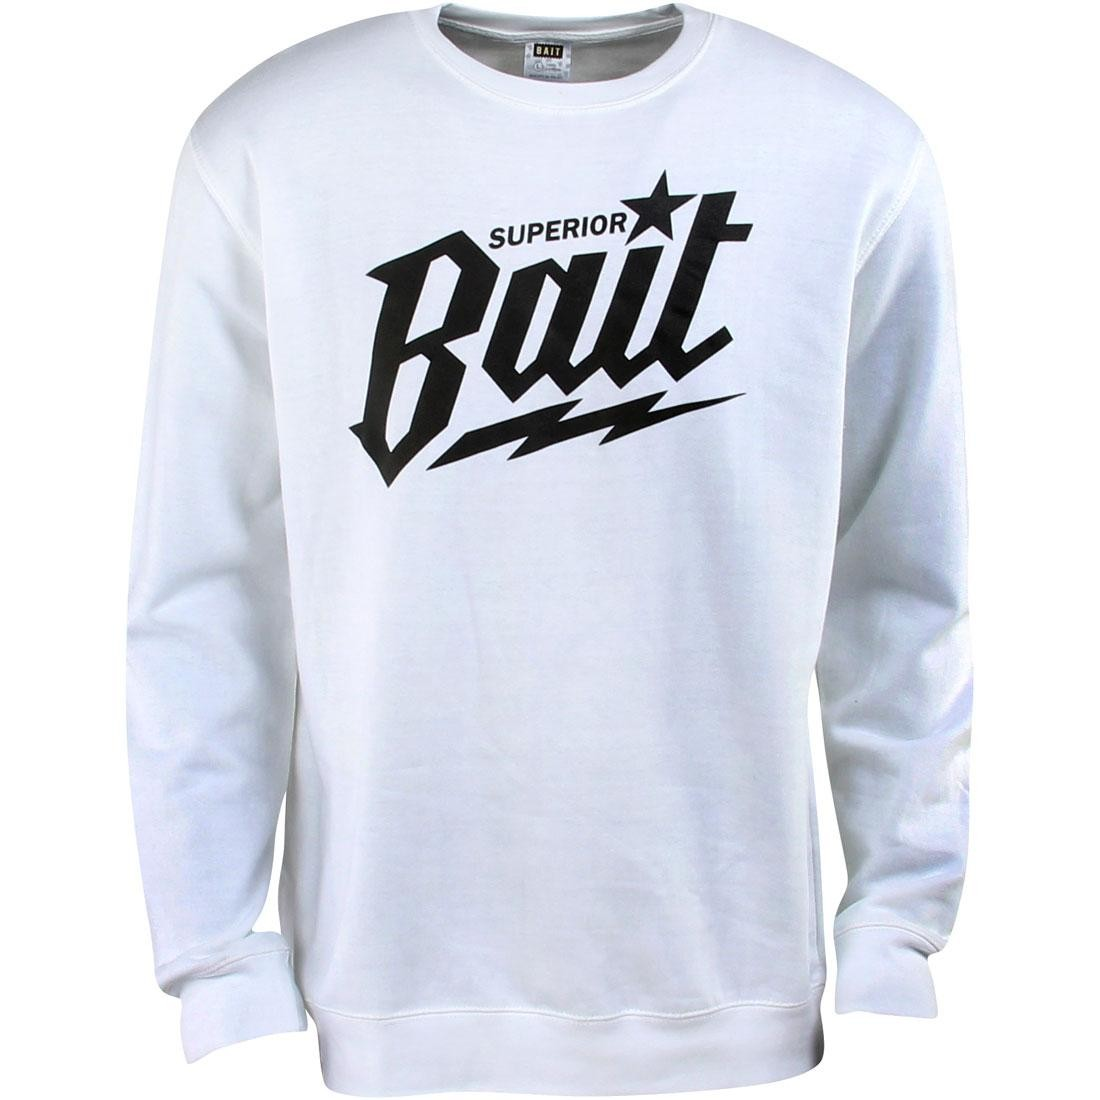 BAIT Superior BAIT Crewneck (white / black)